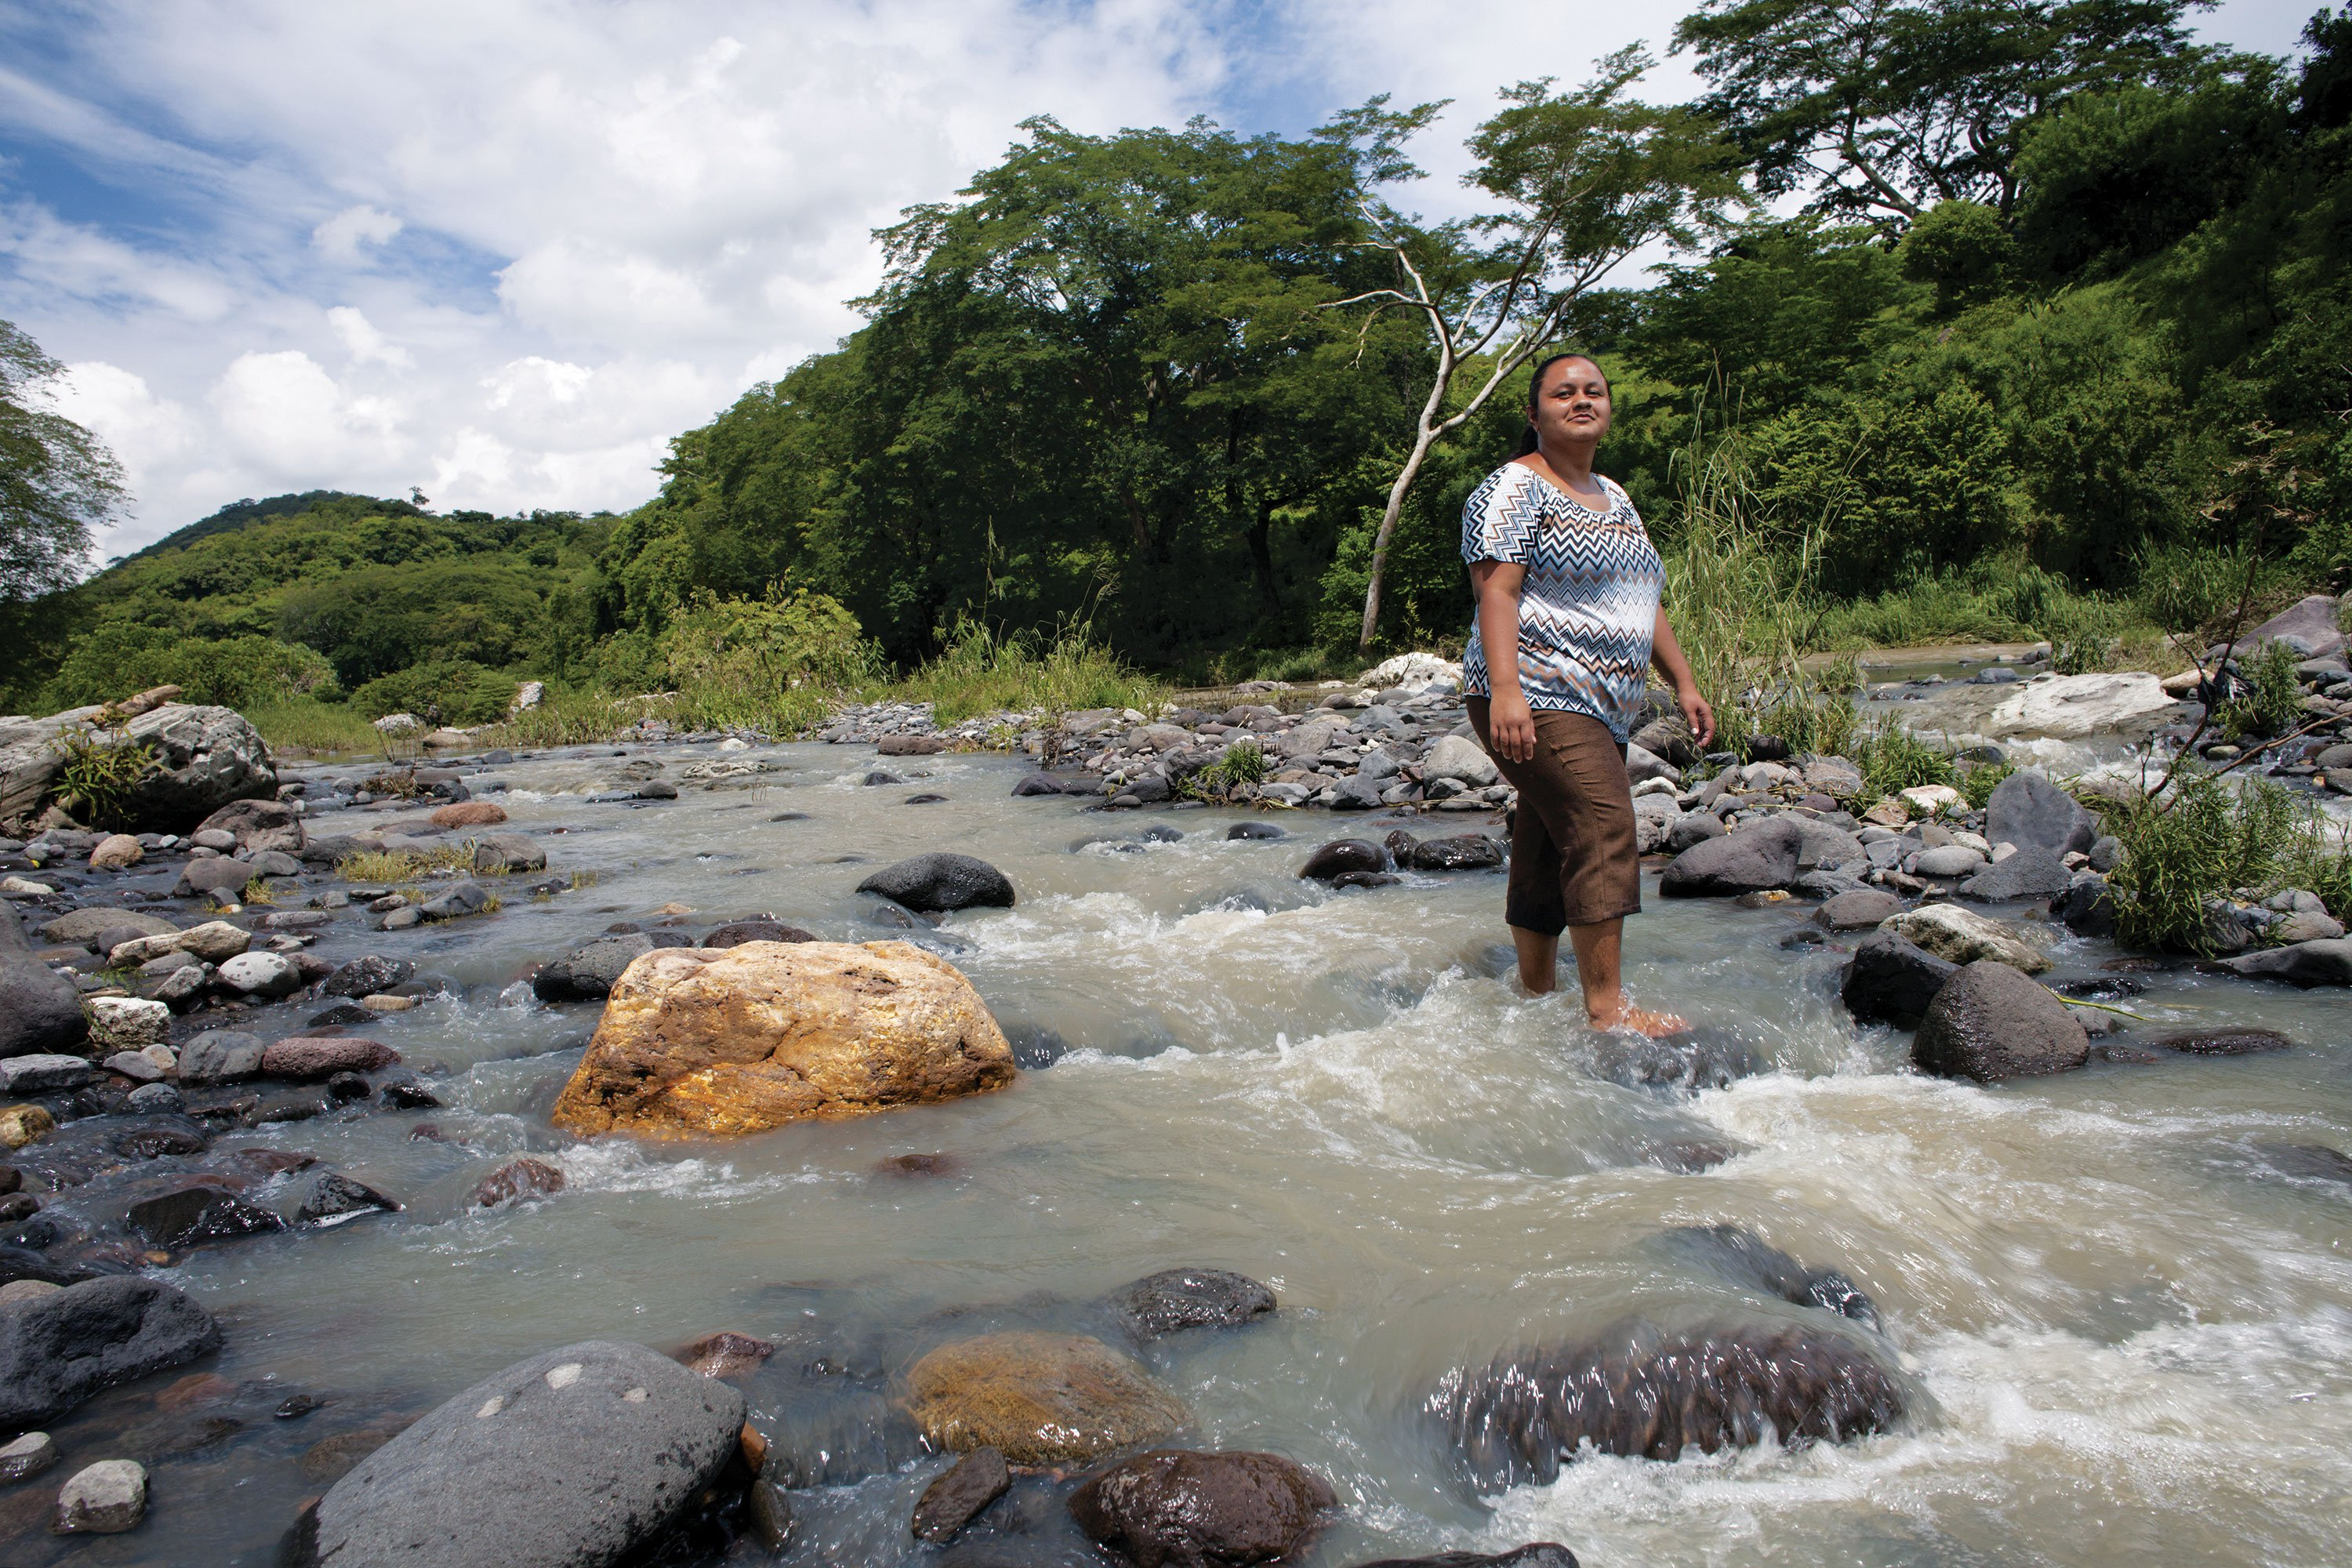 Daysi Carillo walks in the Titihuapa River. Farmers in this area of northern El Salvador feared a proposed gold mine would pollute this vital water source.